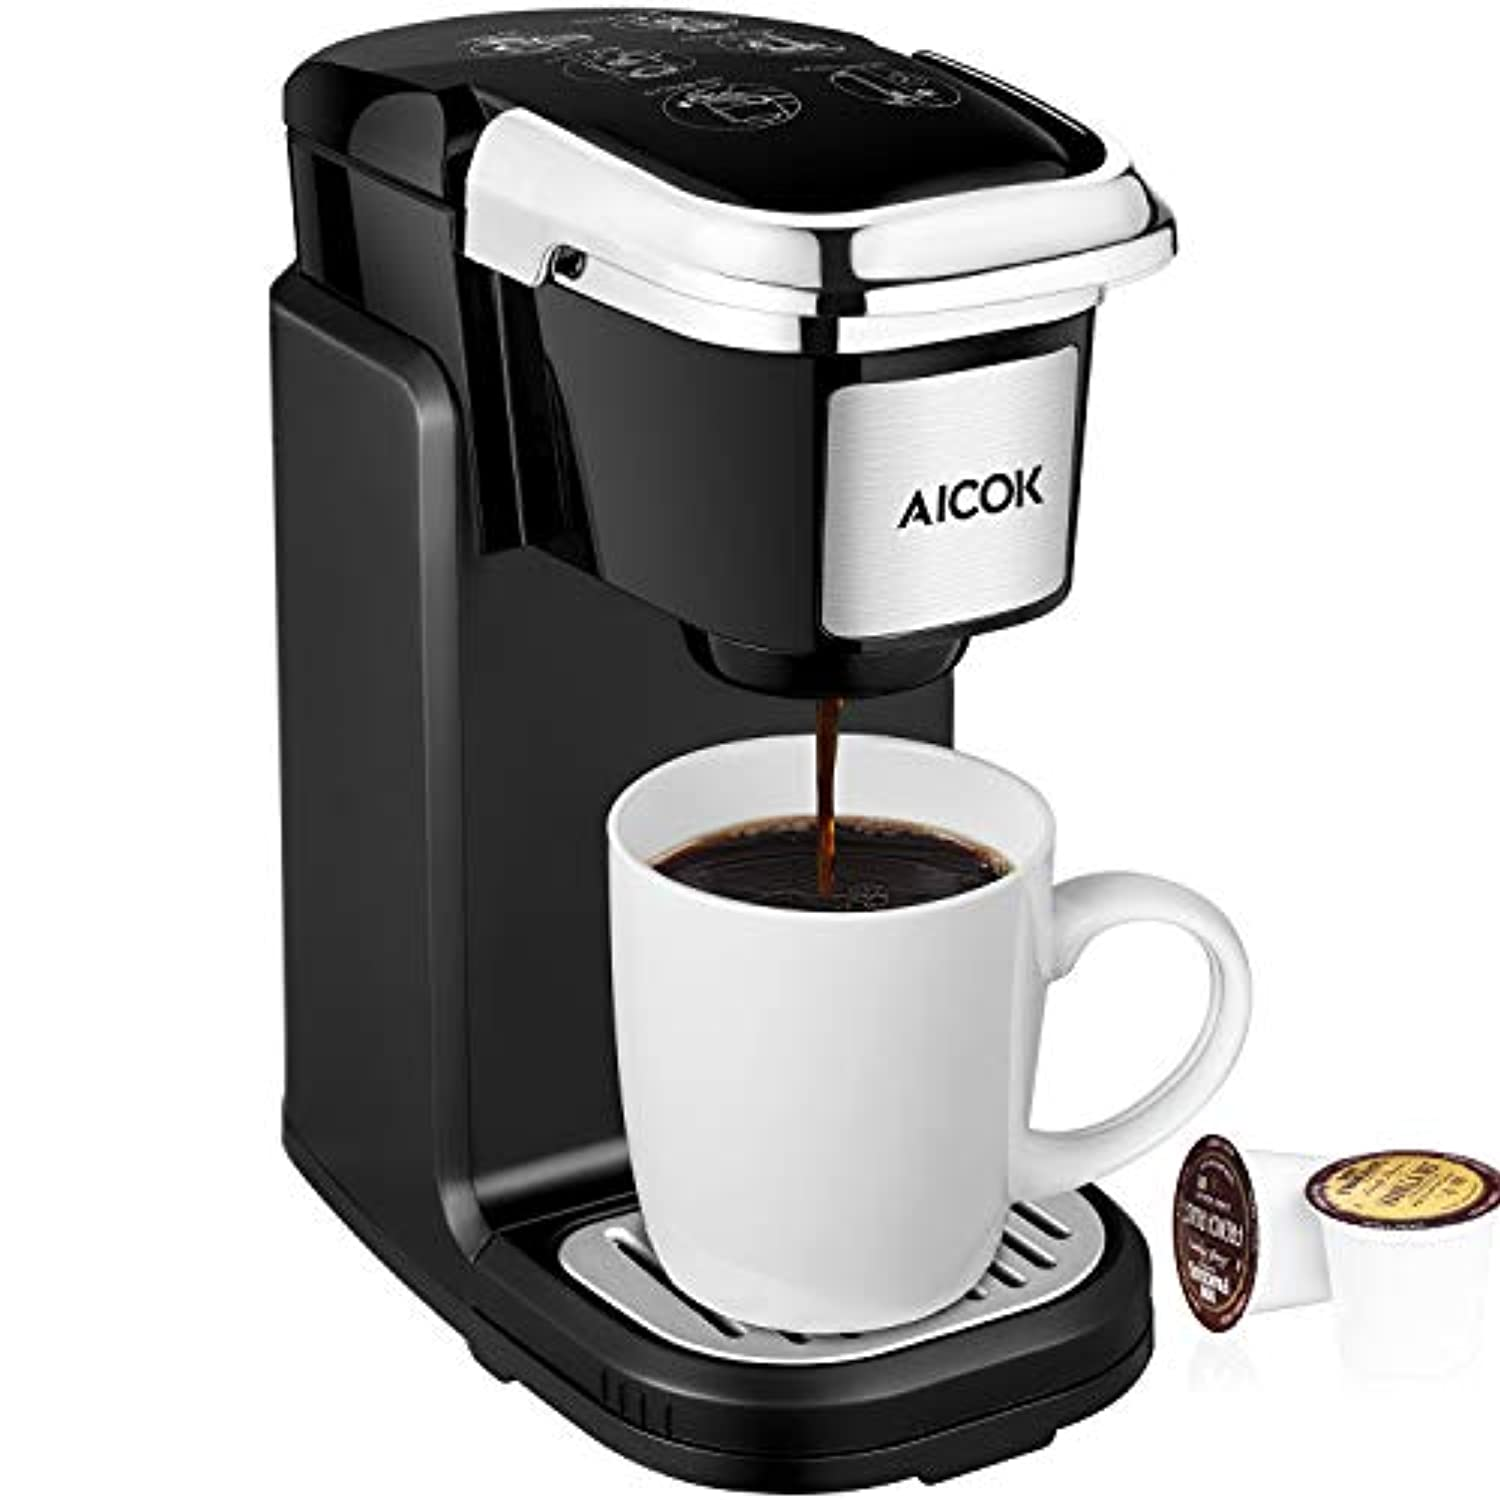 Single Serve Coffee Maker、シングルカップ旅行Coffee Brewer with Removableカバーfor most single cup Pods including k-cupポッド、...